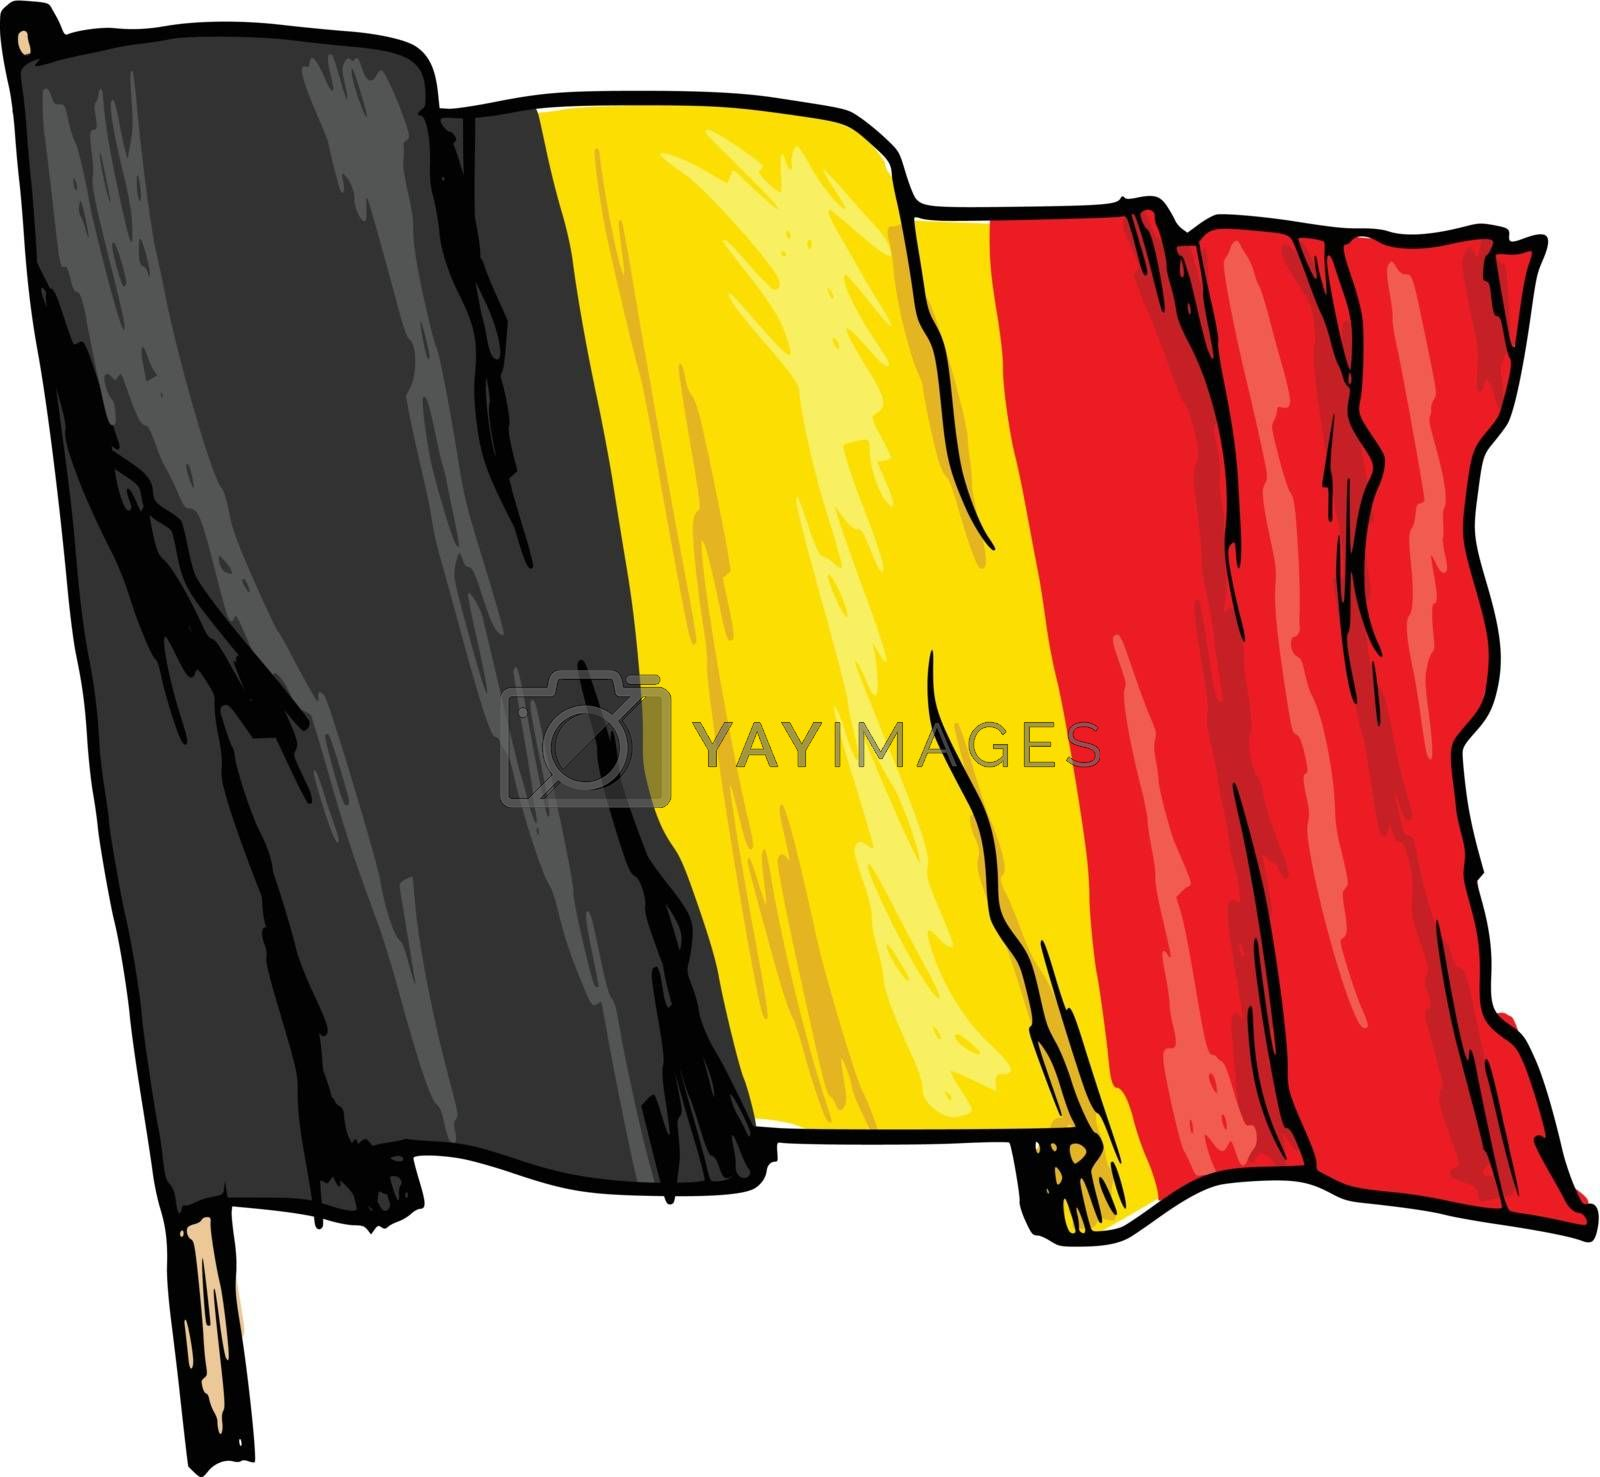 hand drawn, sketch, illustration of flag of Belgium